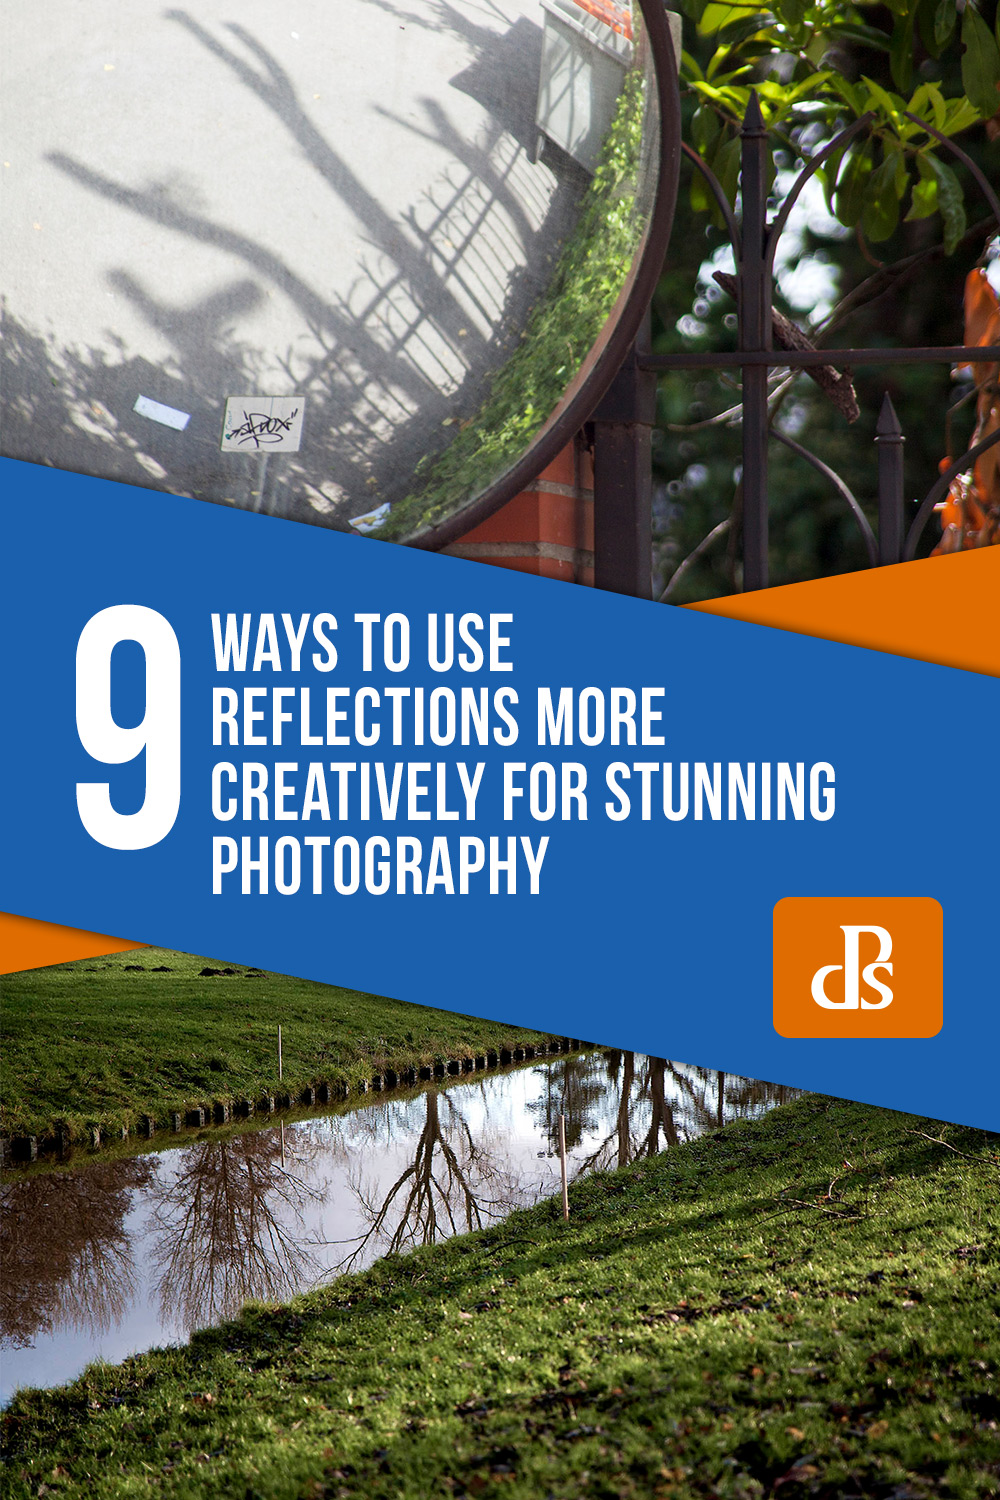 use-reflections-more-creatively